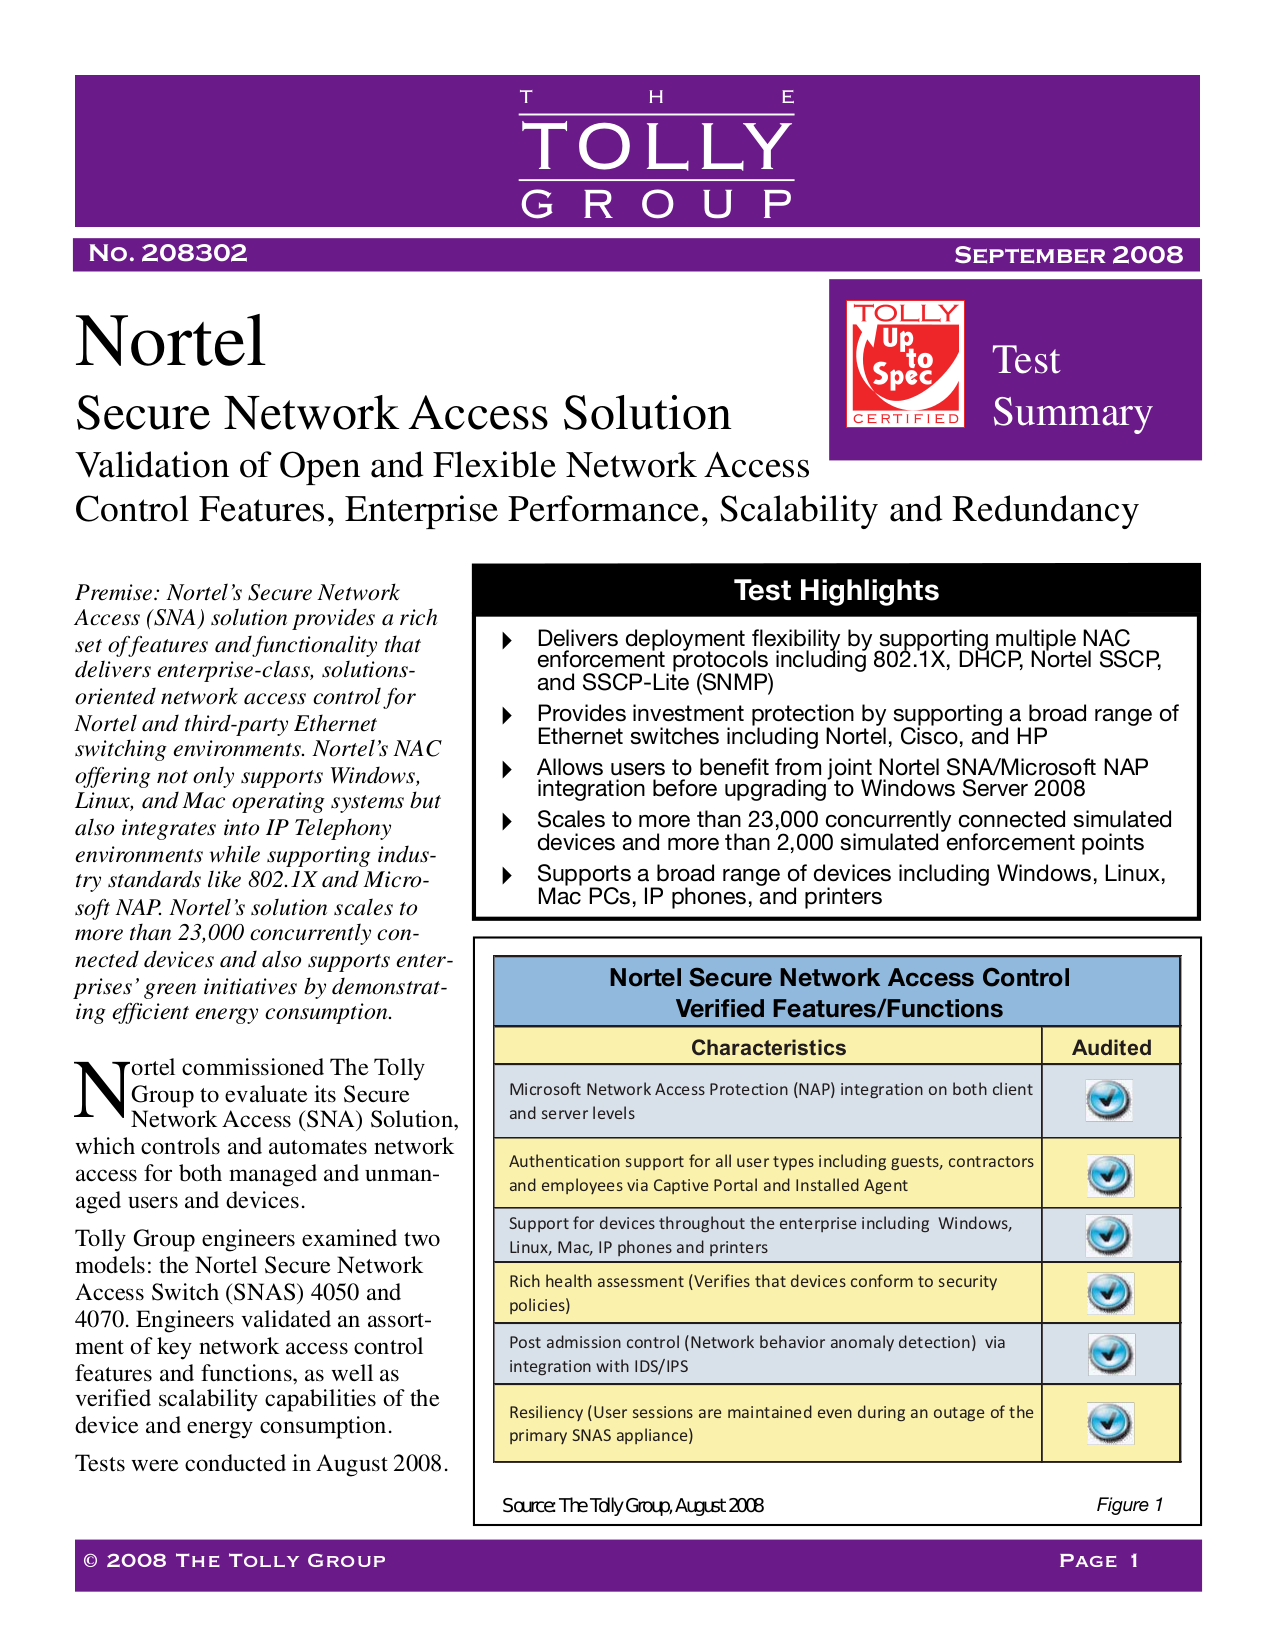 pdf for Nortel Switch 4050 manual